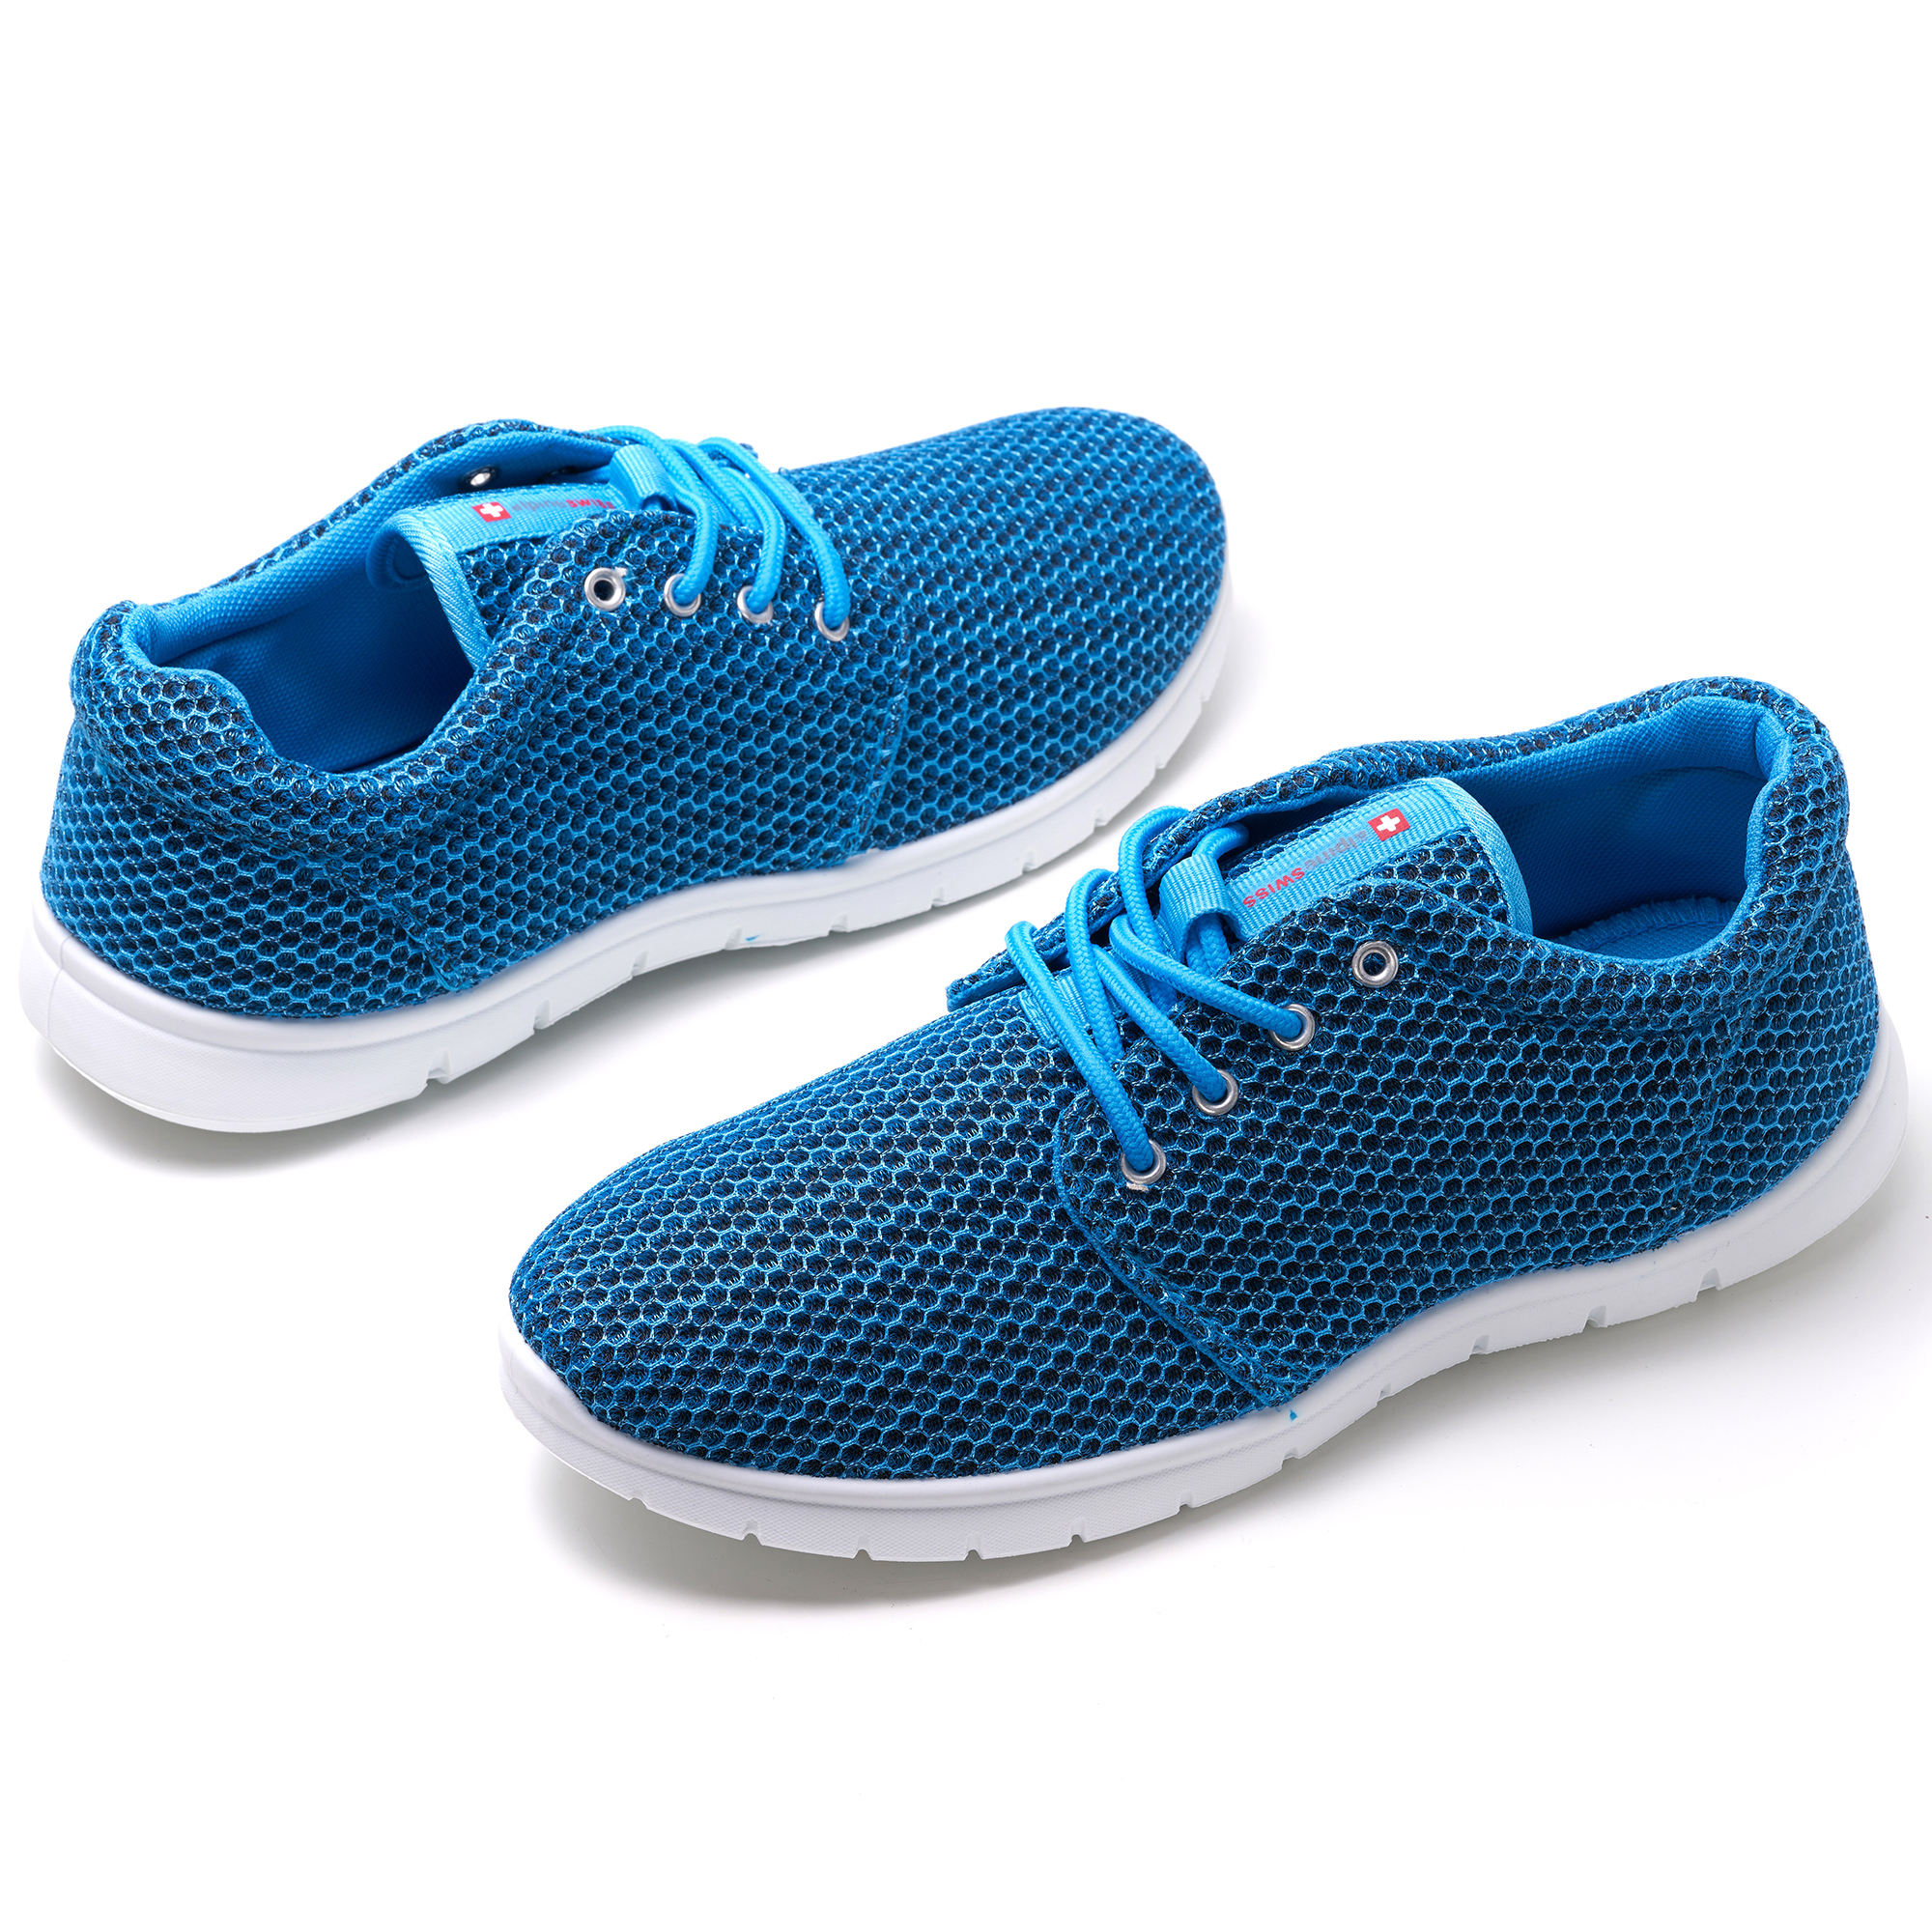 Alpine-Swiss-Kilian-Mesh-Sneakers-Casual-Shoes-Mens-amp-Womens-Lightweight-Trainer thumbnail 26